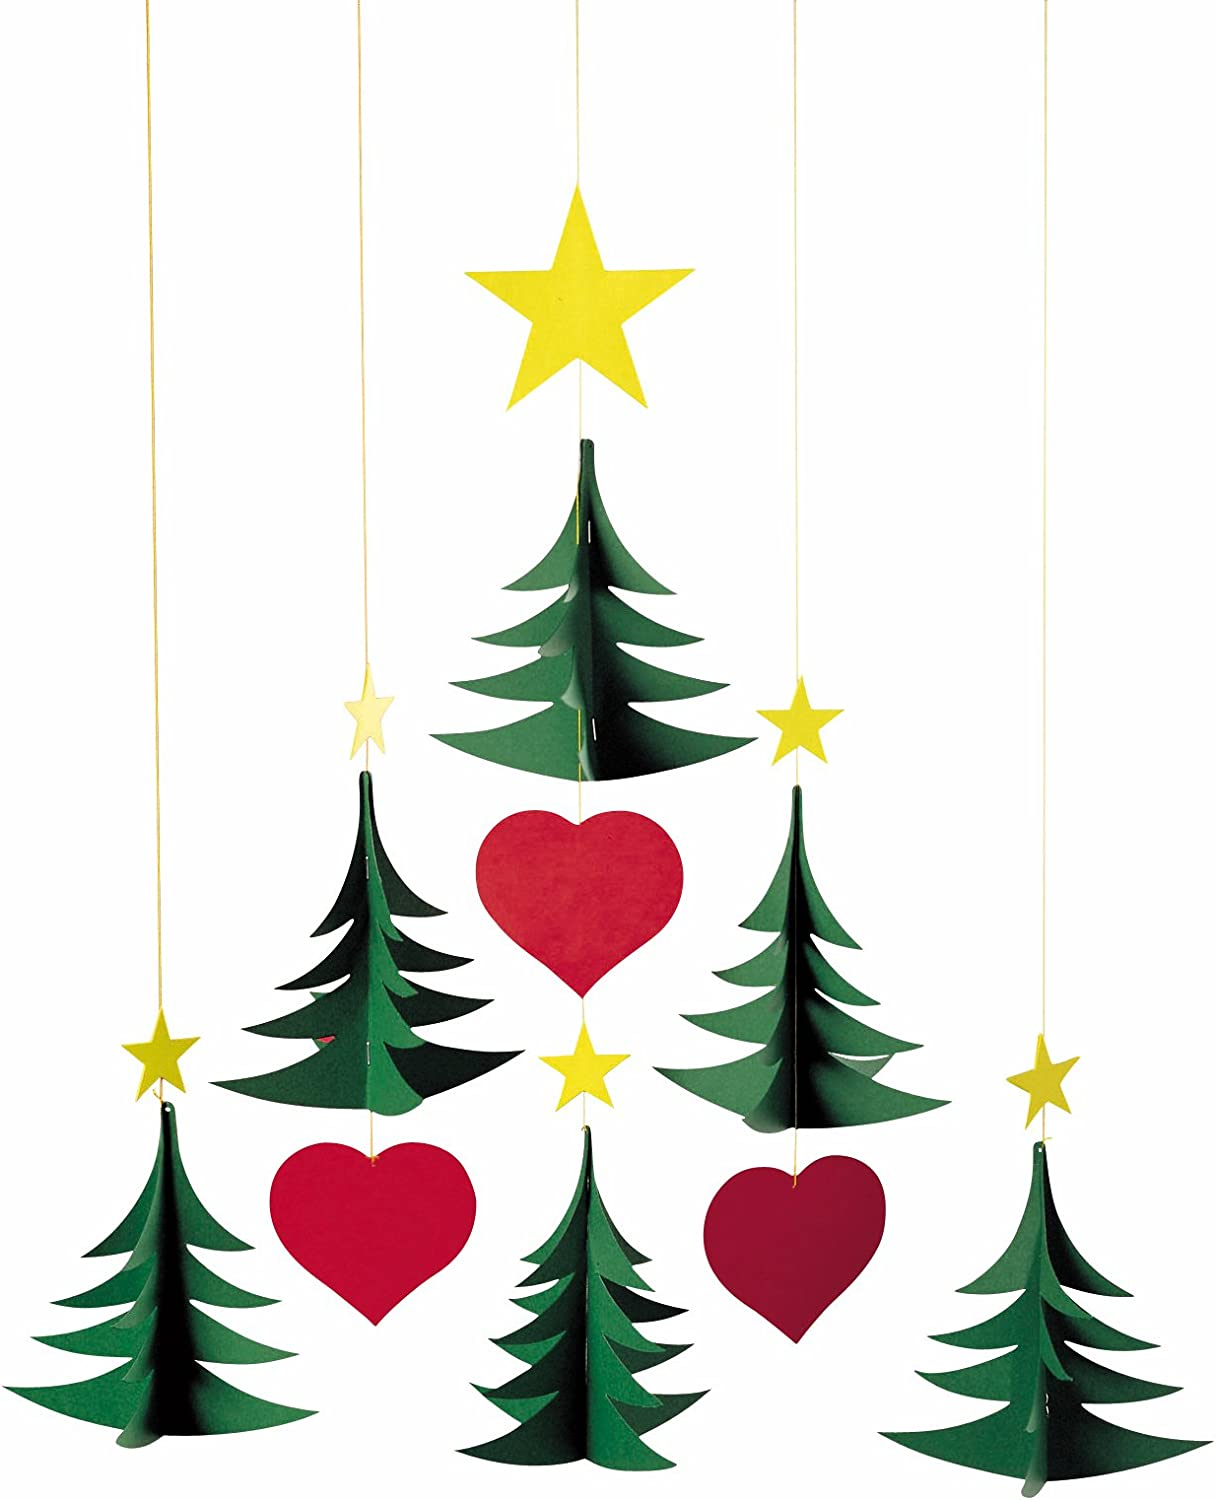 Christmas Some reservation Tree 6 Hanging Mobile 4 years warranty - Inches Handmade 17 in Denmar